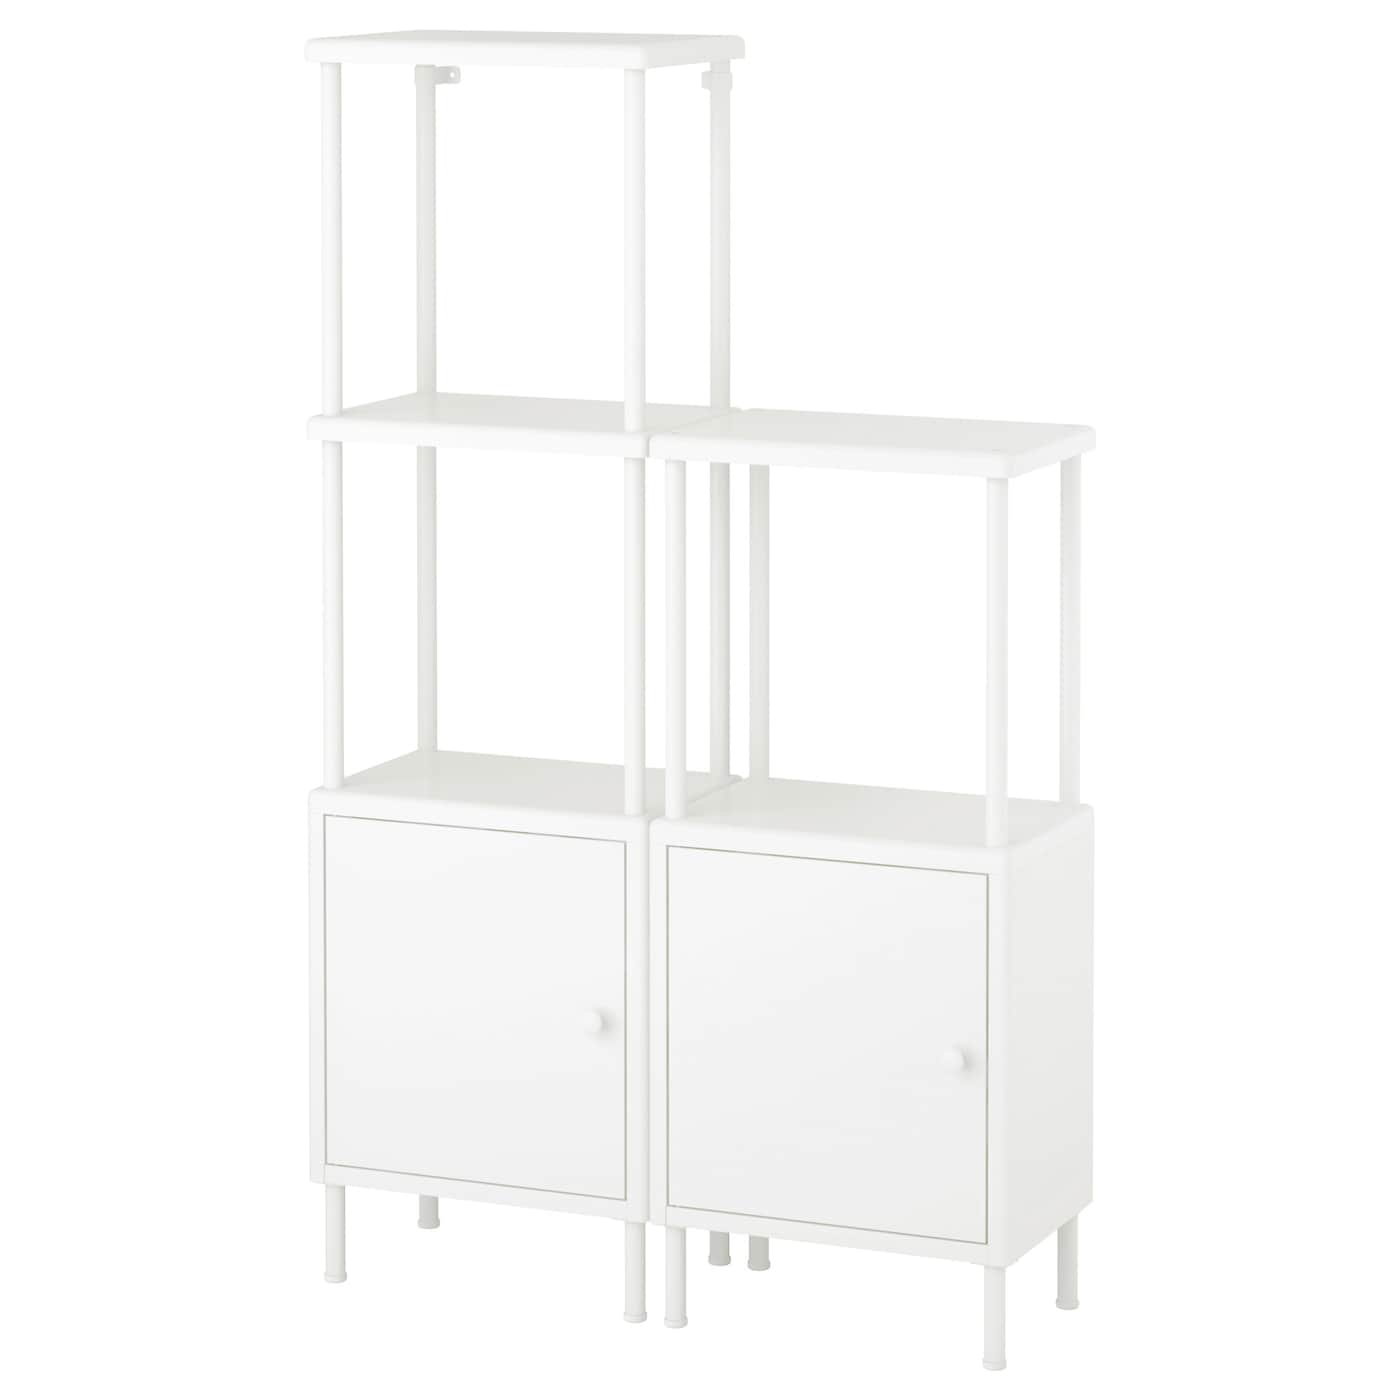 ikea dynan shelving unit with 2 cabinets perfect in a small bathroom